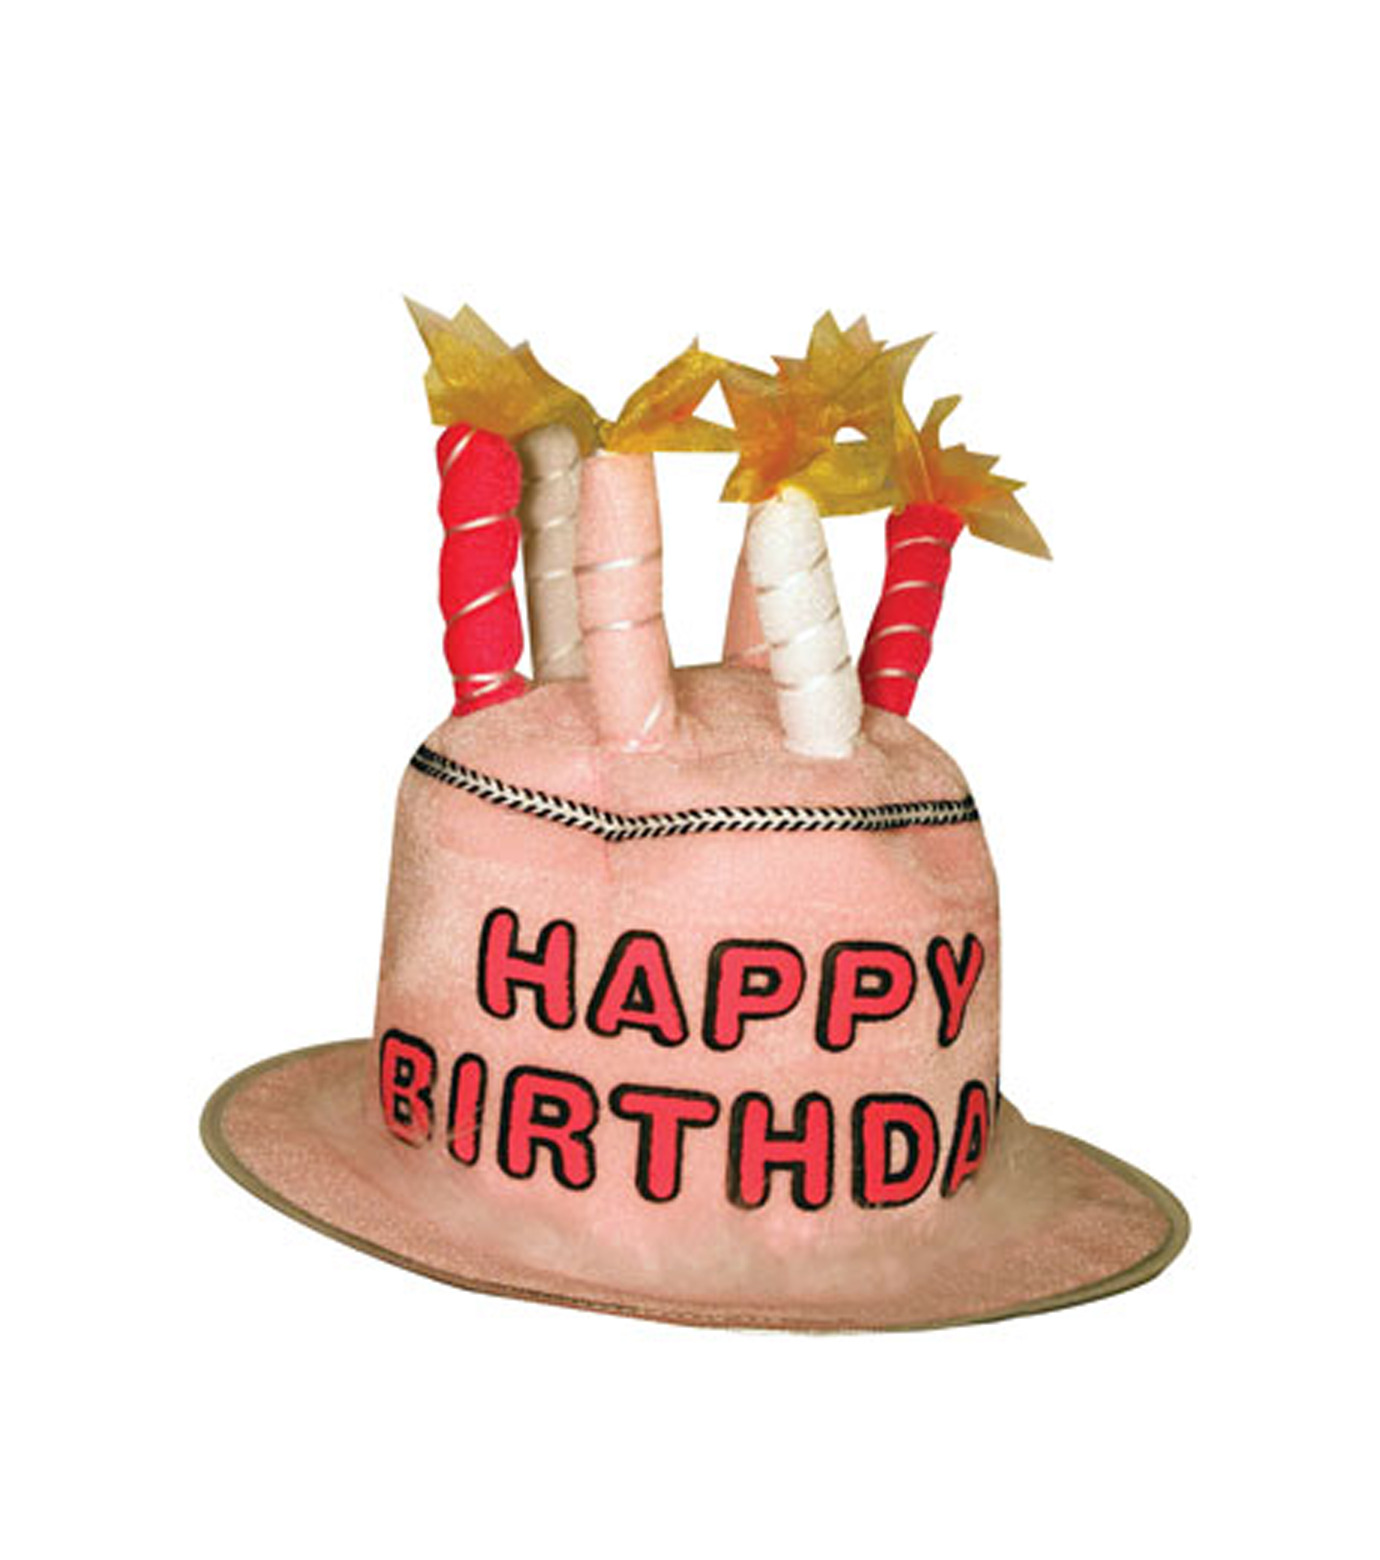 BIG MOUTH(ビッグマウス)のPink Happy Birthday Candle Hat-PINK(OTHER-GOODS/OTHER-GOODS)-MG-9022-72 拡大詳細画像1